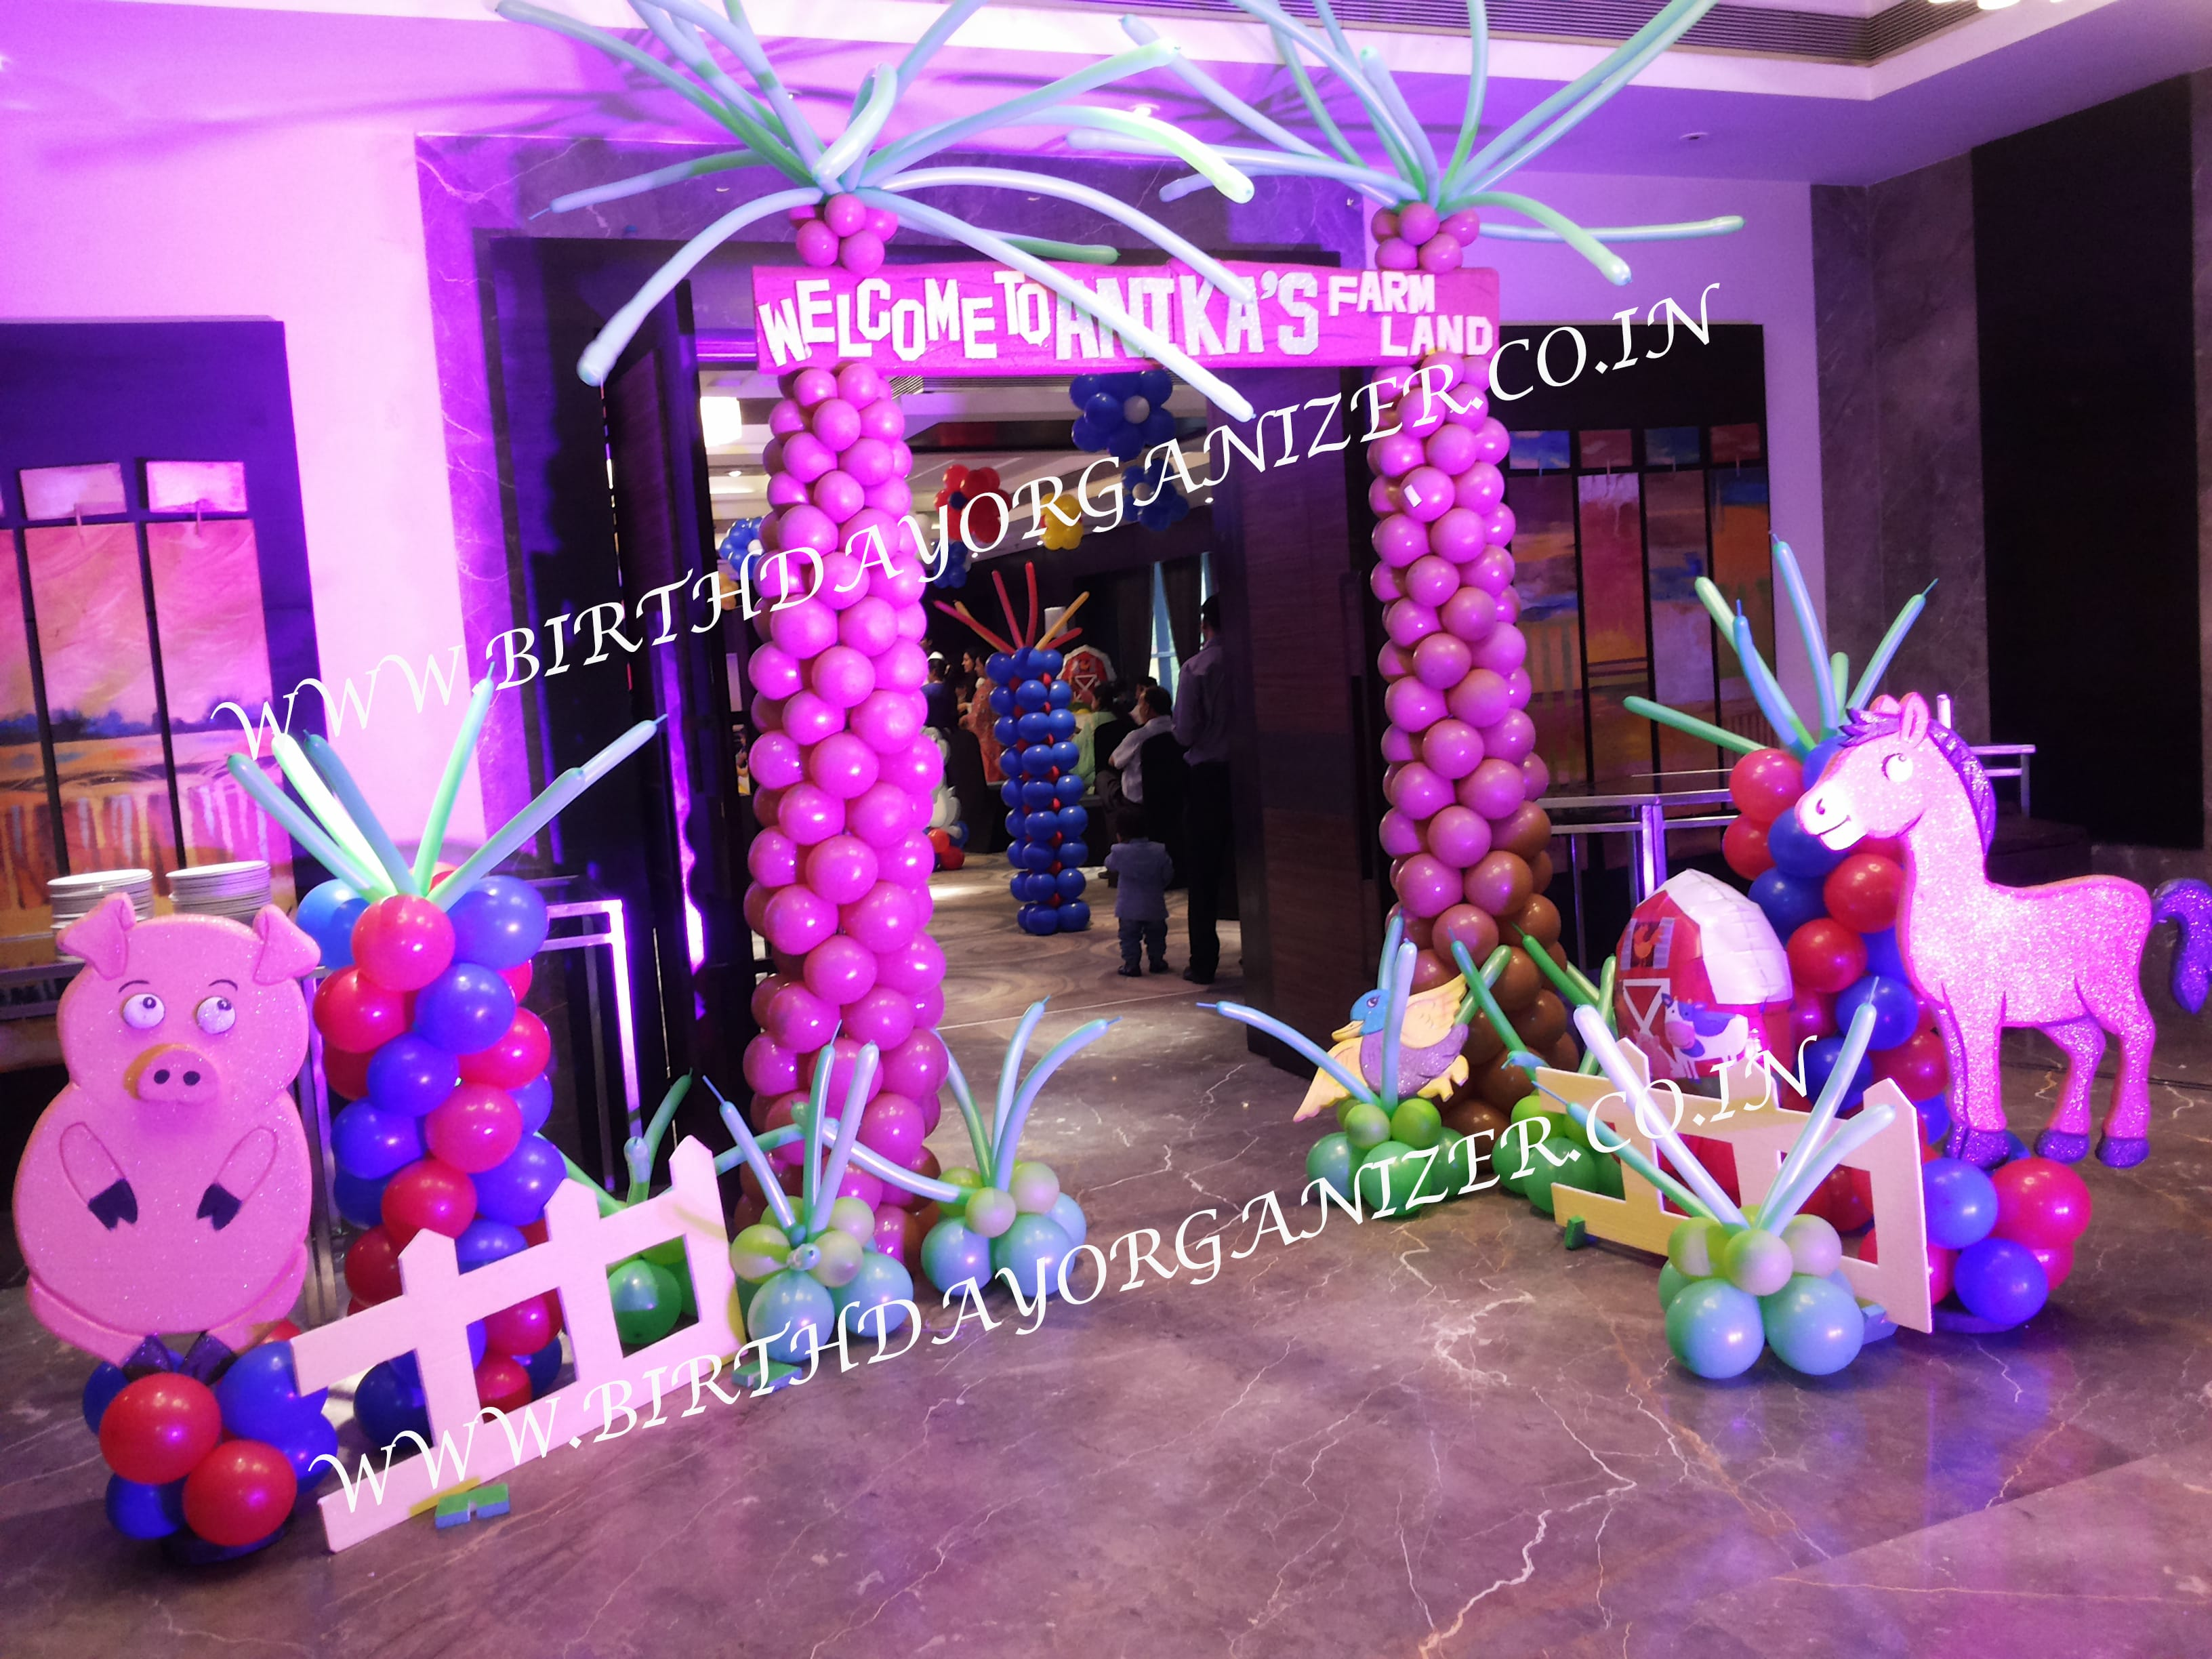 balloon decoration ideas for kids party in gurgaon noida delhi ncr,balloon decoration ideas for kids birthday party in delhi noida ncr gurgaon,balloon decoration ideas for kids birthday party planner in noida delhi ncr gurgaon